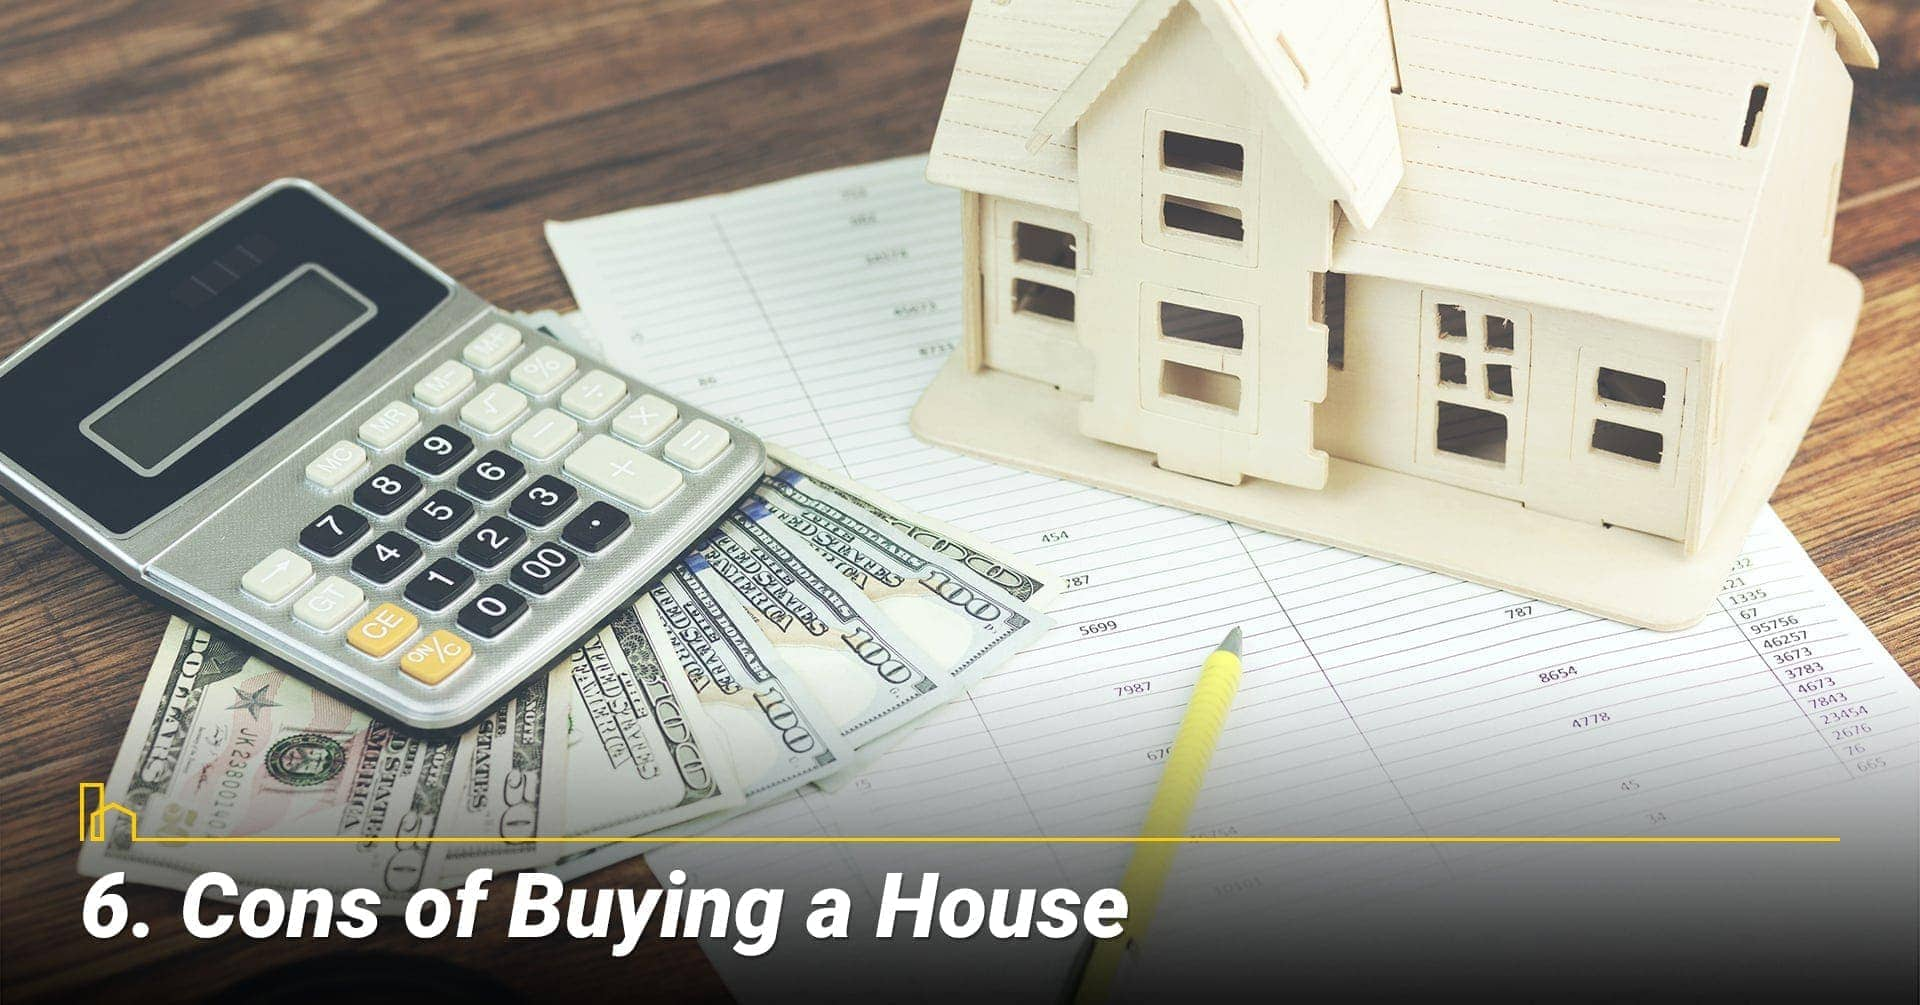 Cons of Buying a House, disadvantages of buying a home